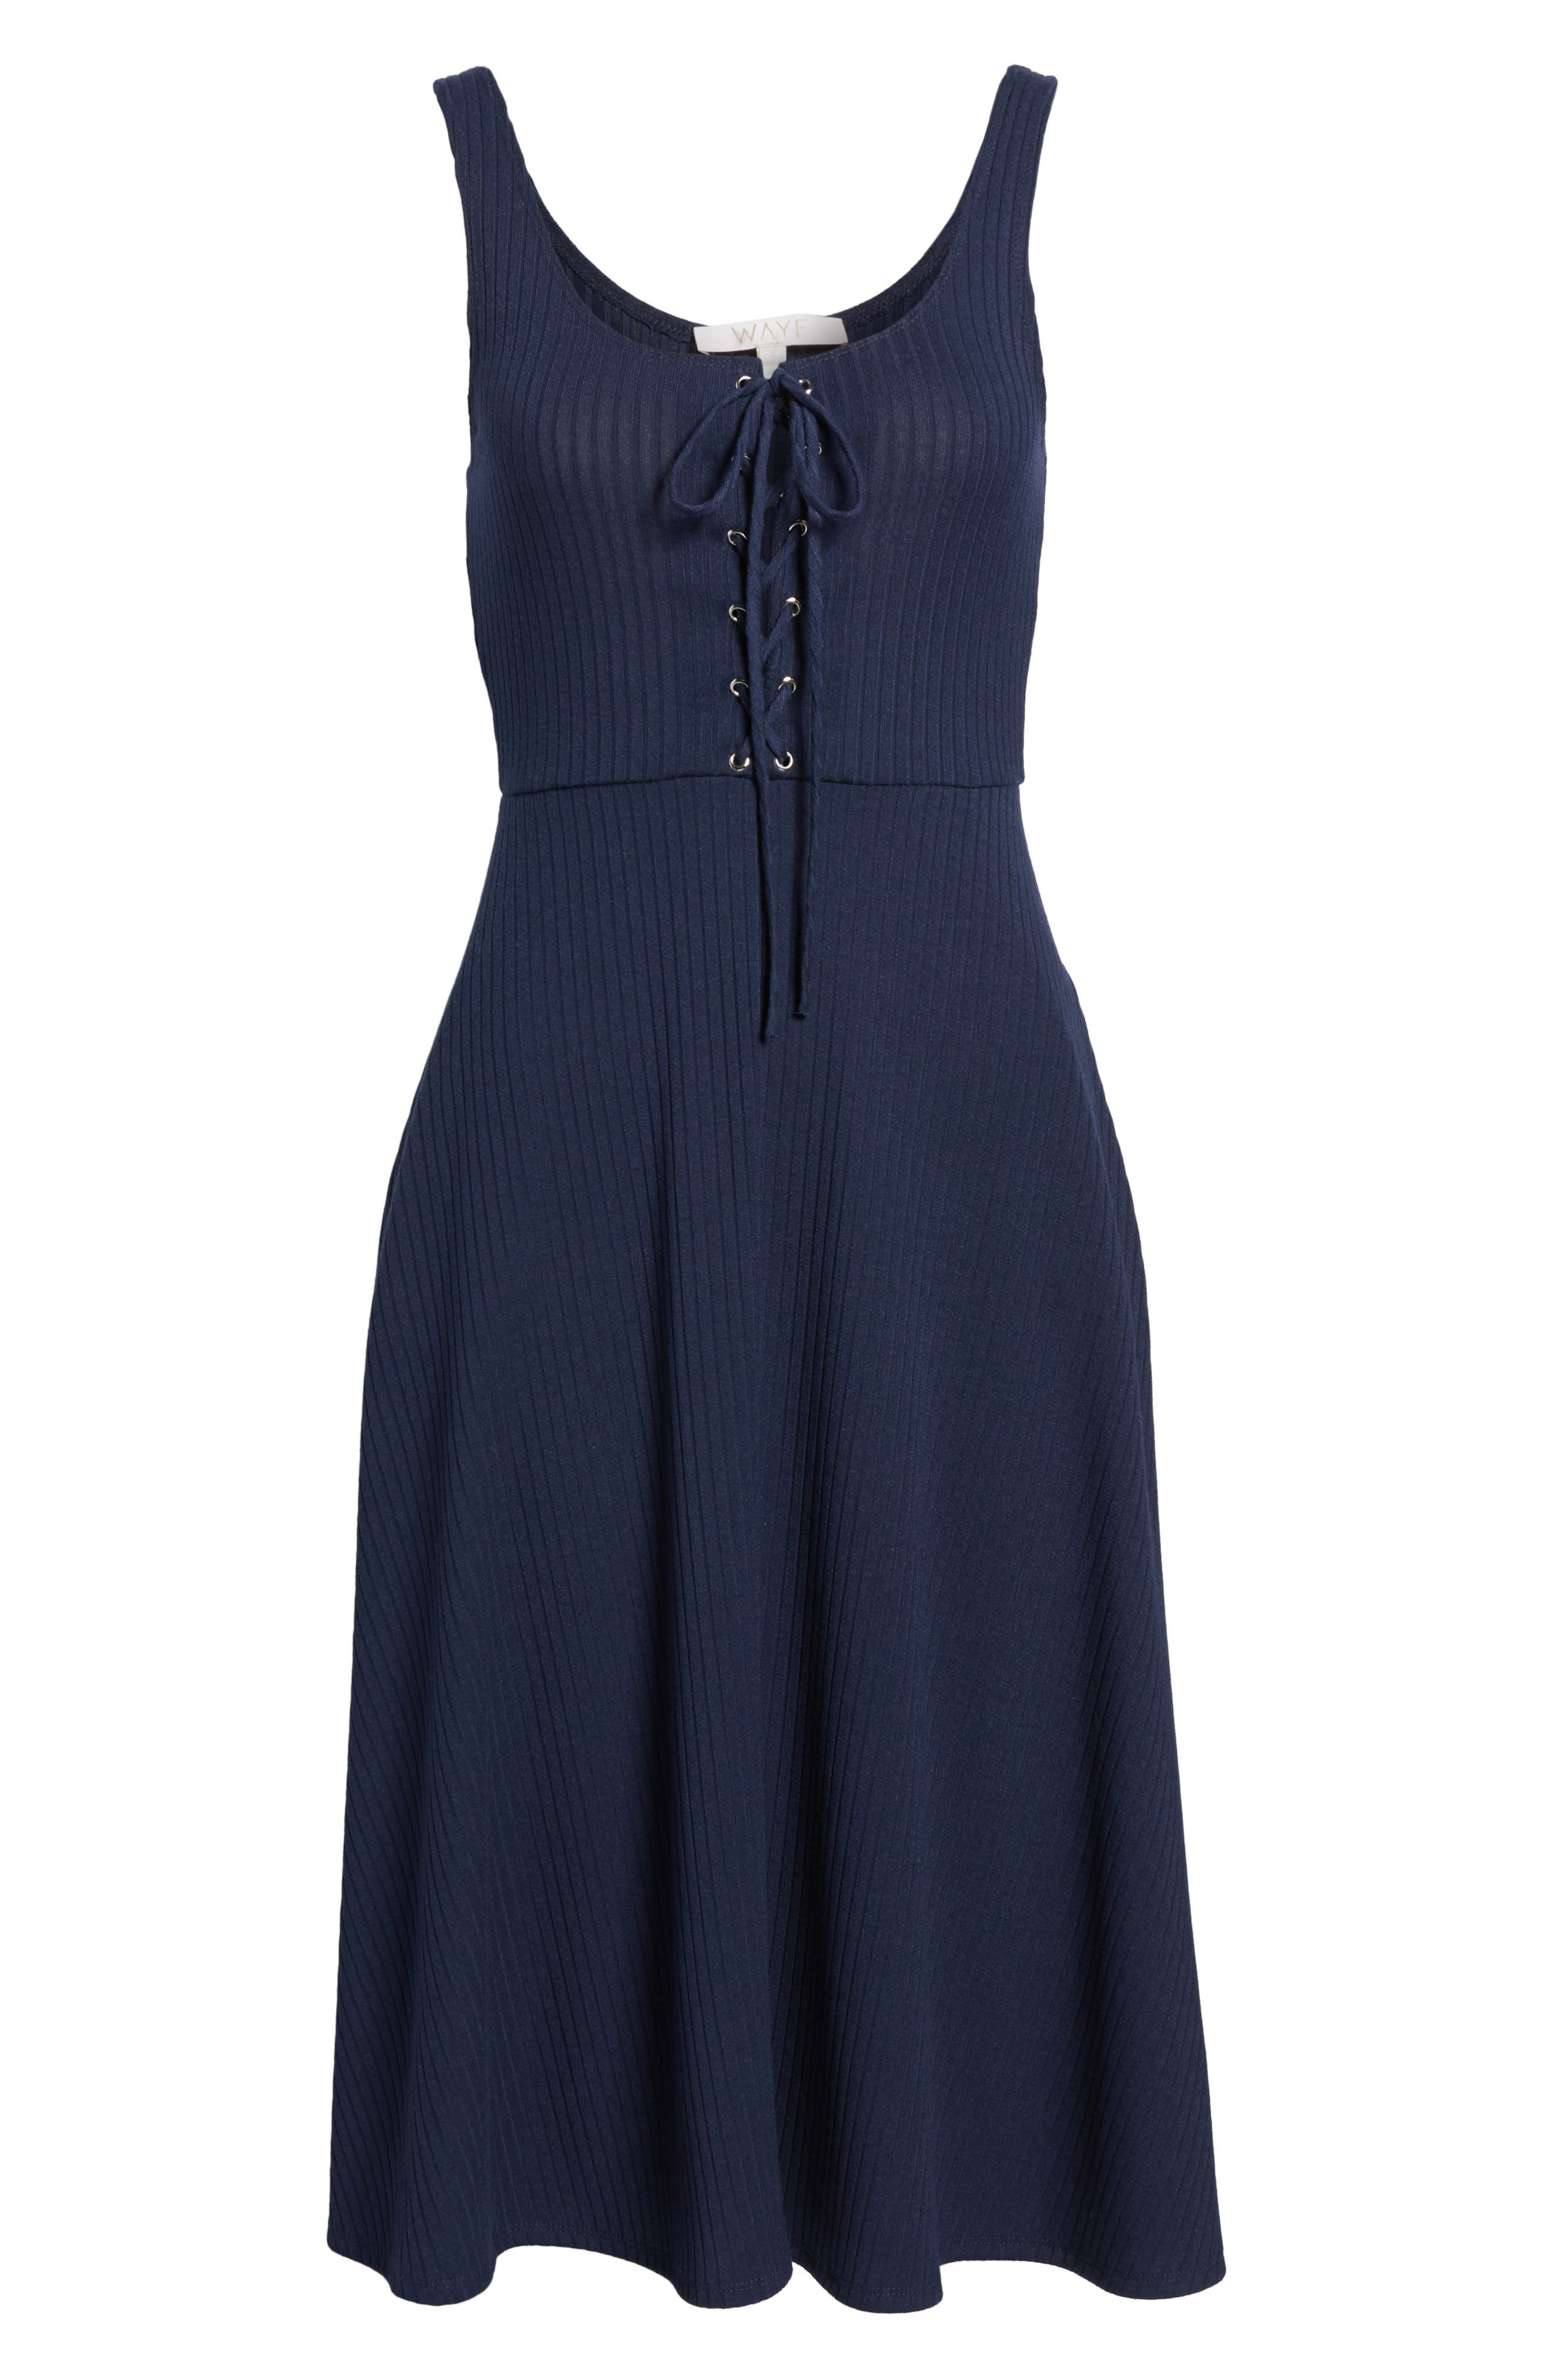 Fawn Lace-Up Midi Dress,                             Alternate thumbnail 6, color,                             Navy